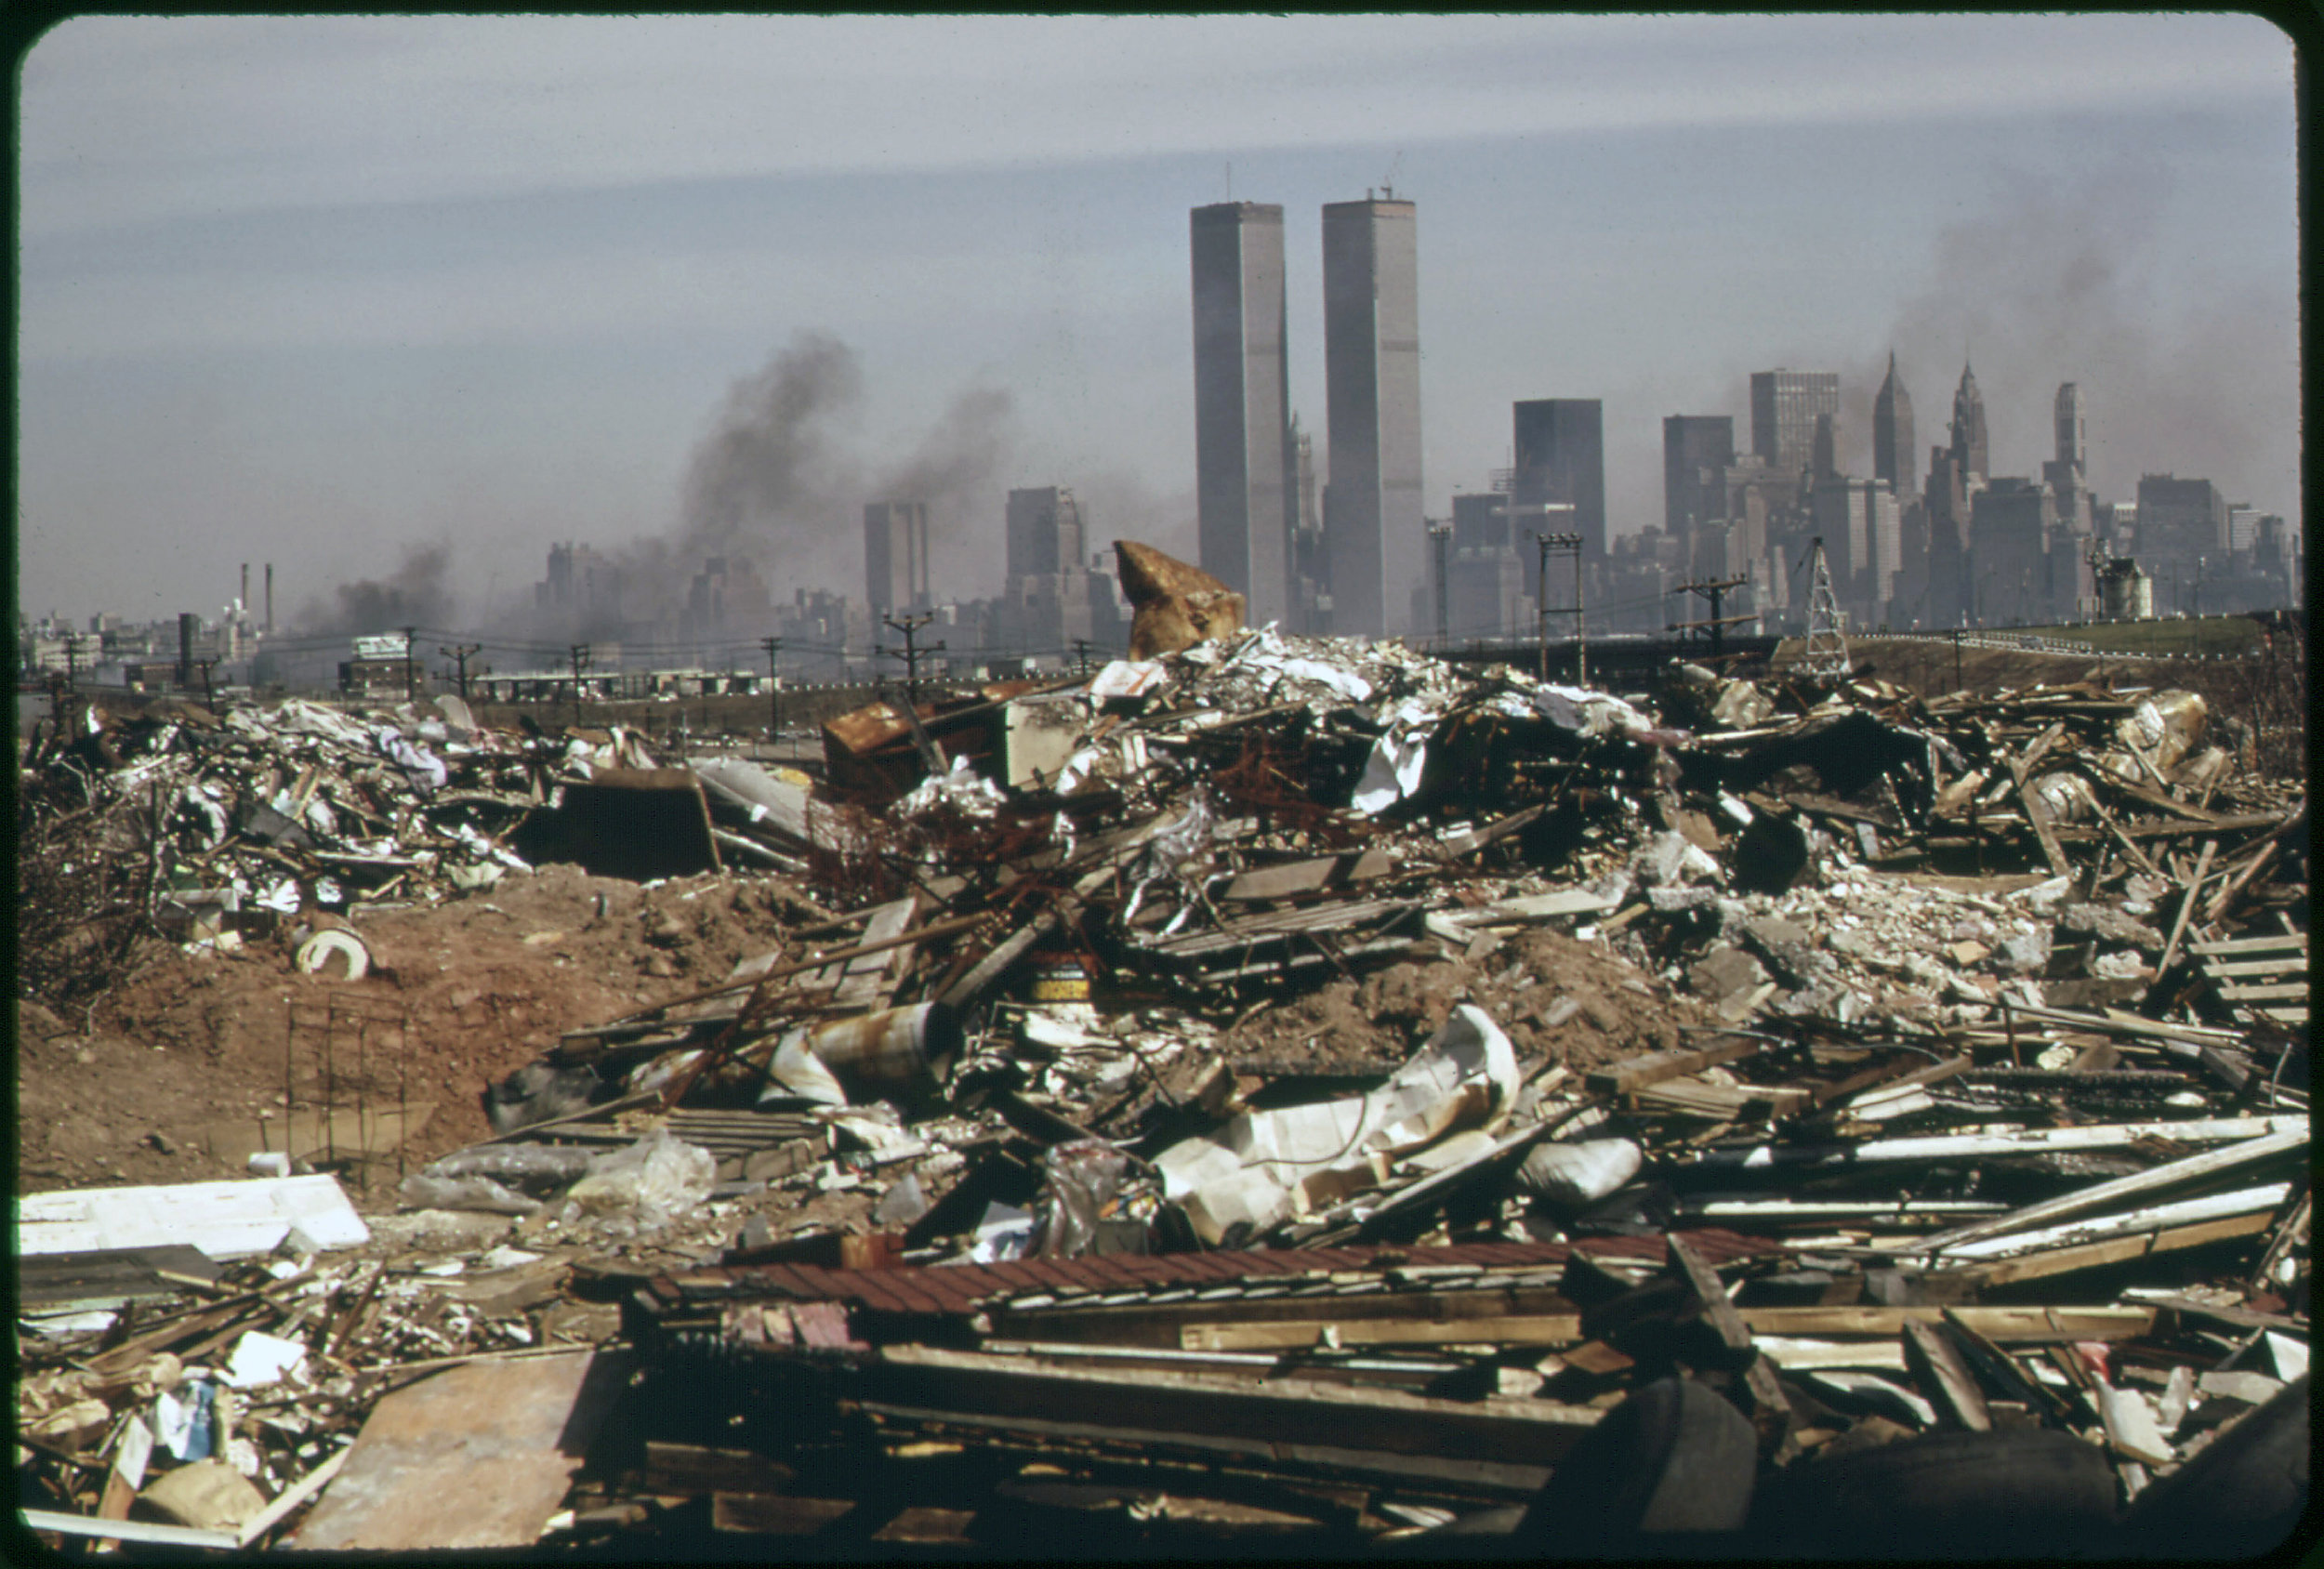 WTC_from_NJT-illegal_dump-hr.jpg